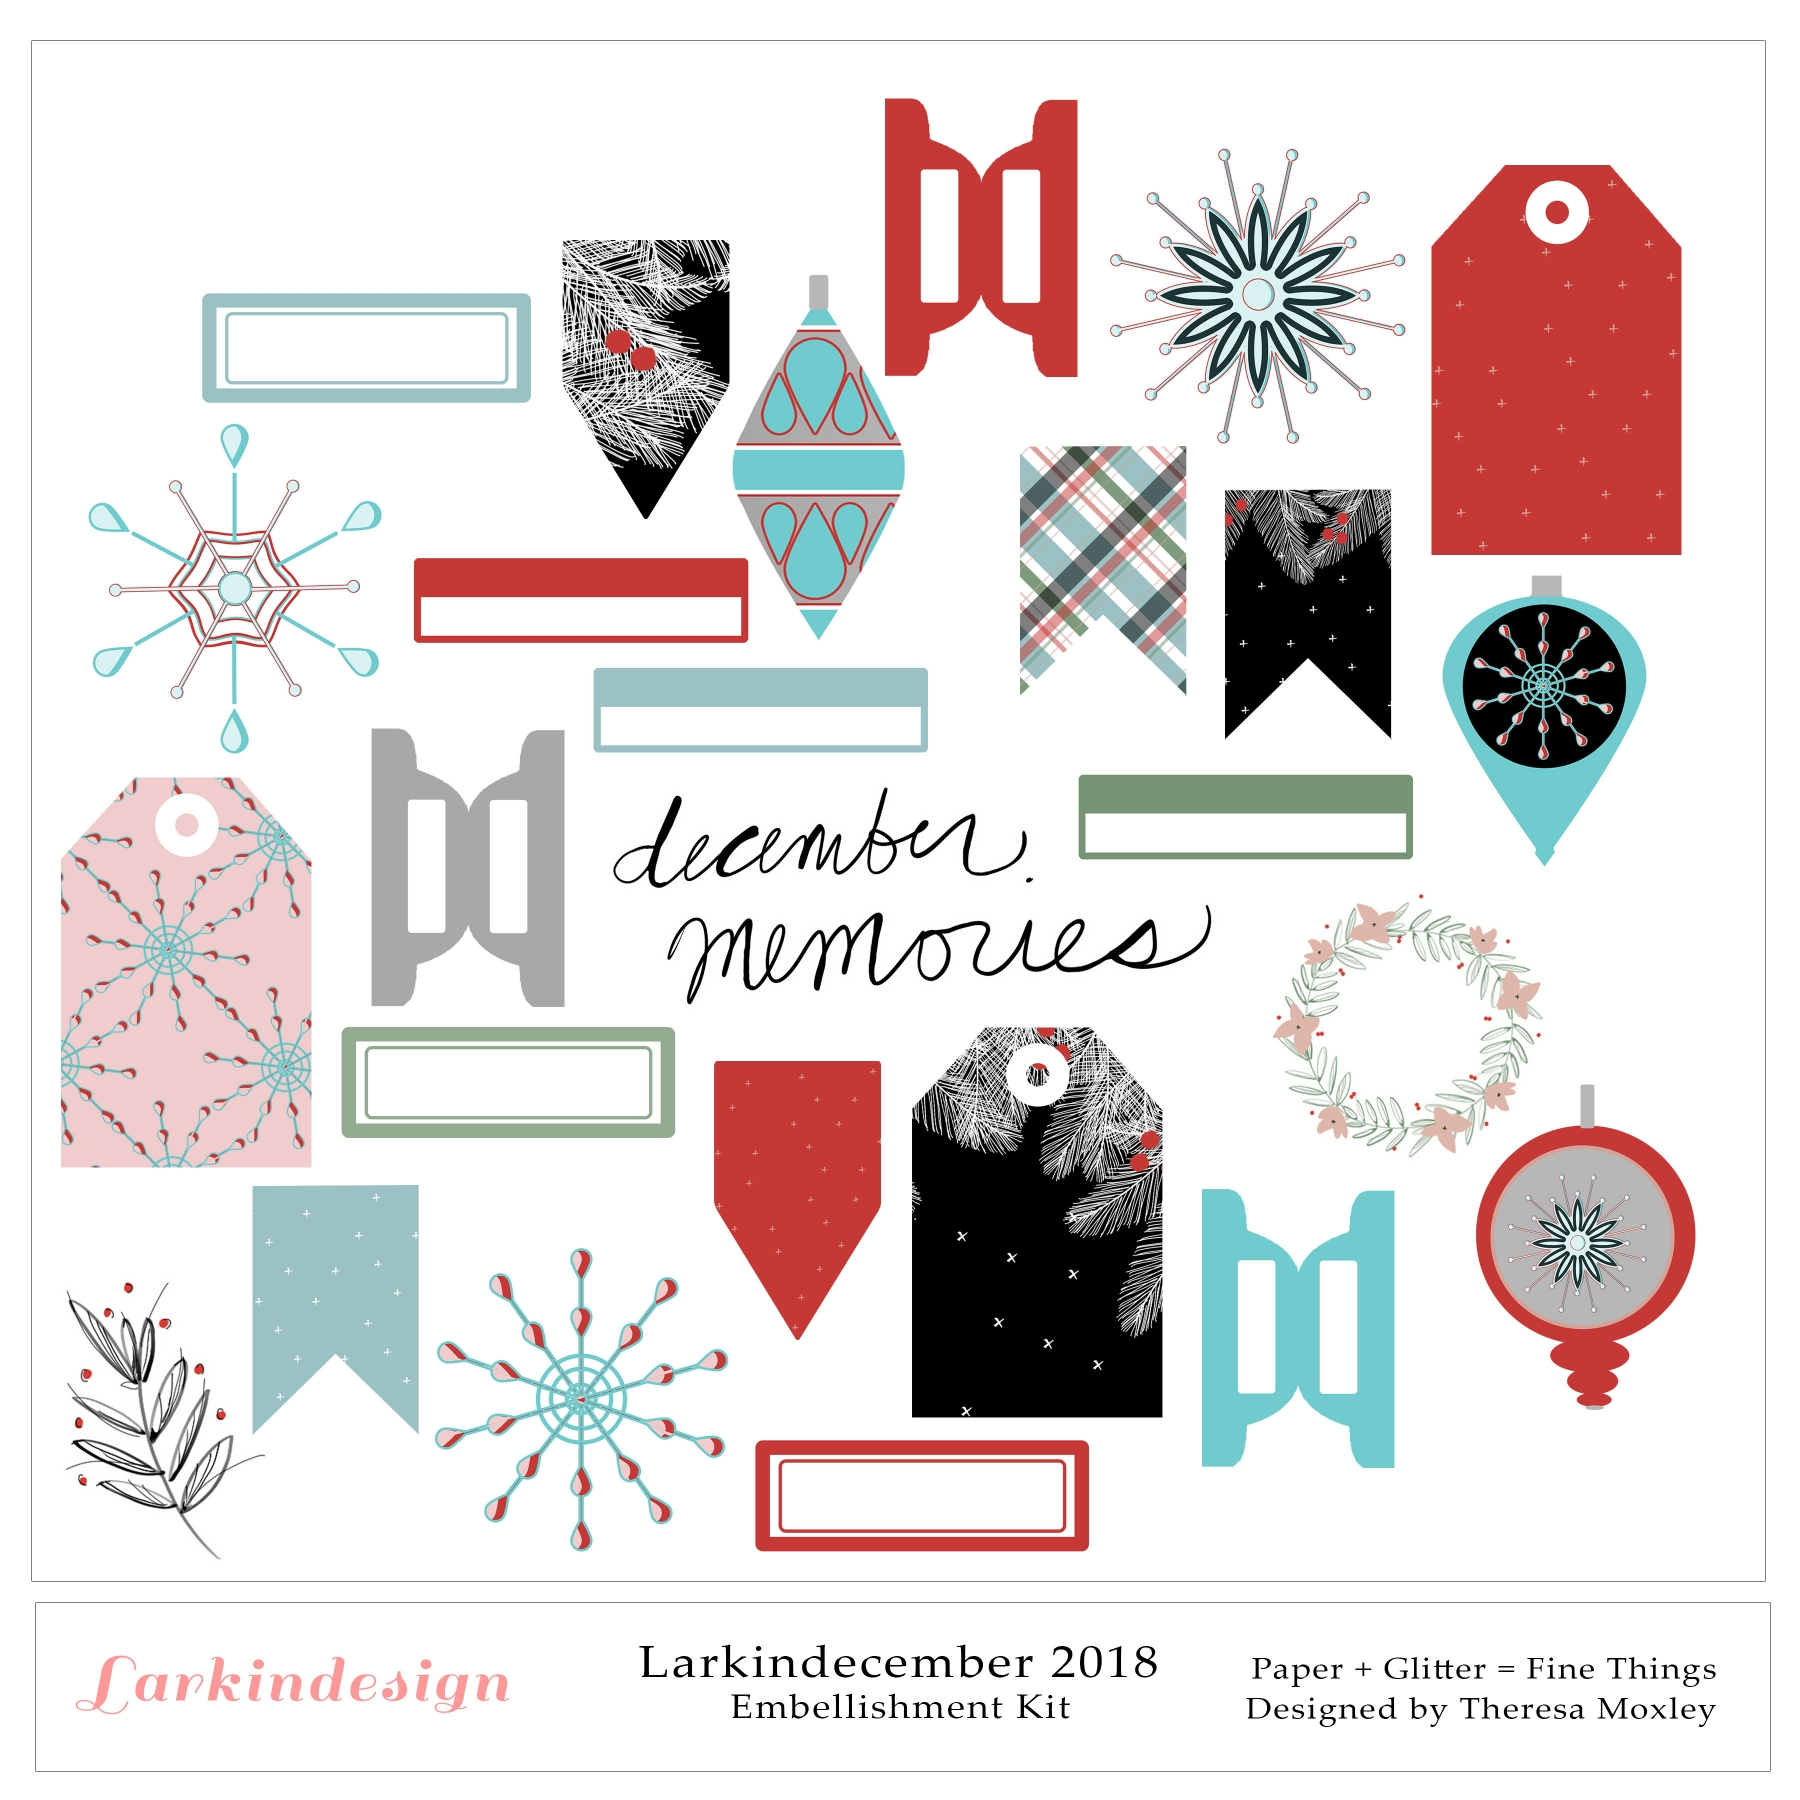 Larkindecember 2018 Embellishments